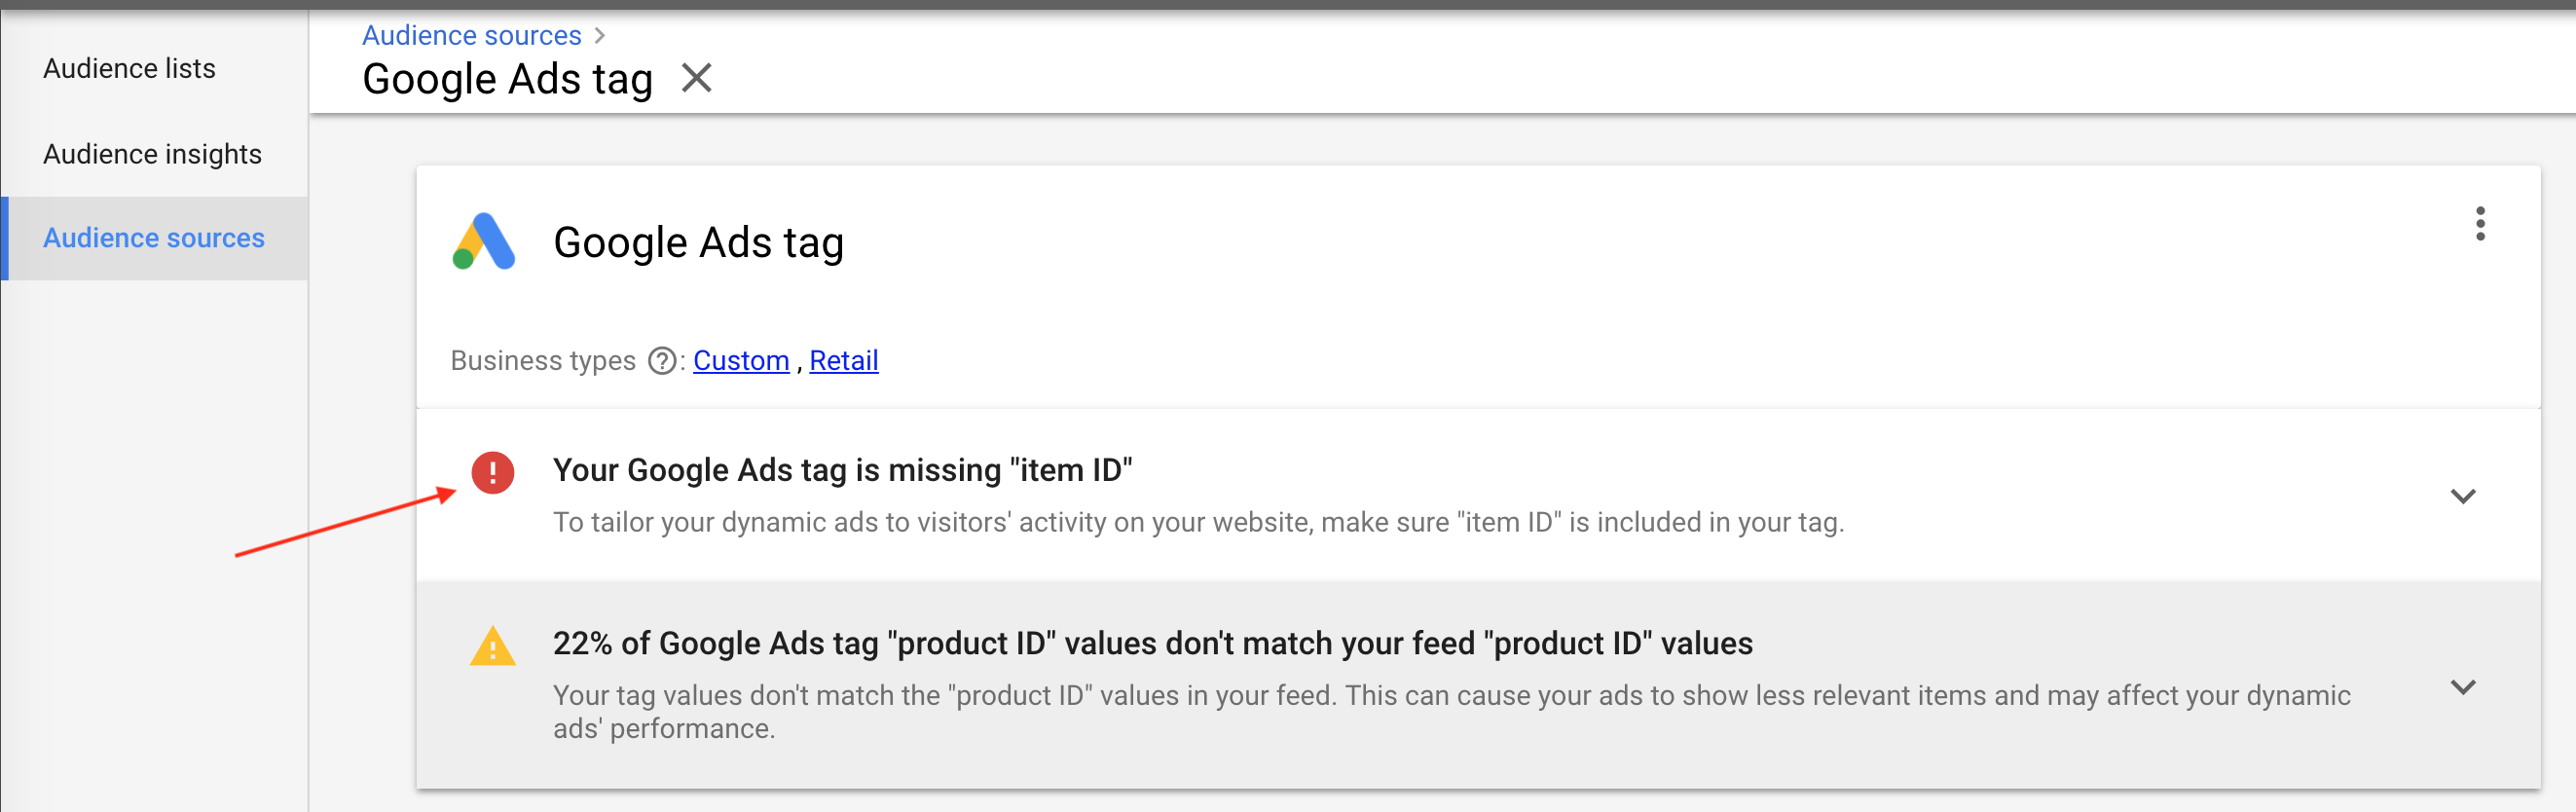 "22% Google Ads Tag ""product ID"" values don't match your feed ""product ID"" values"